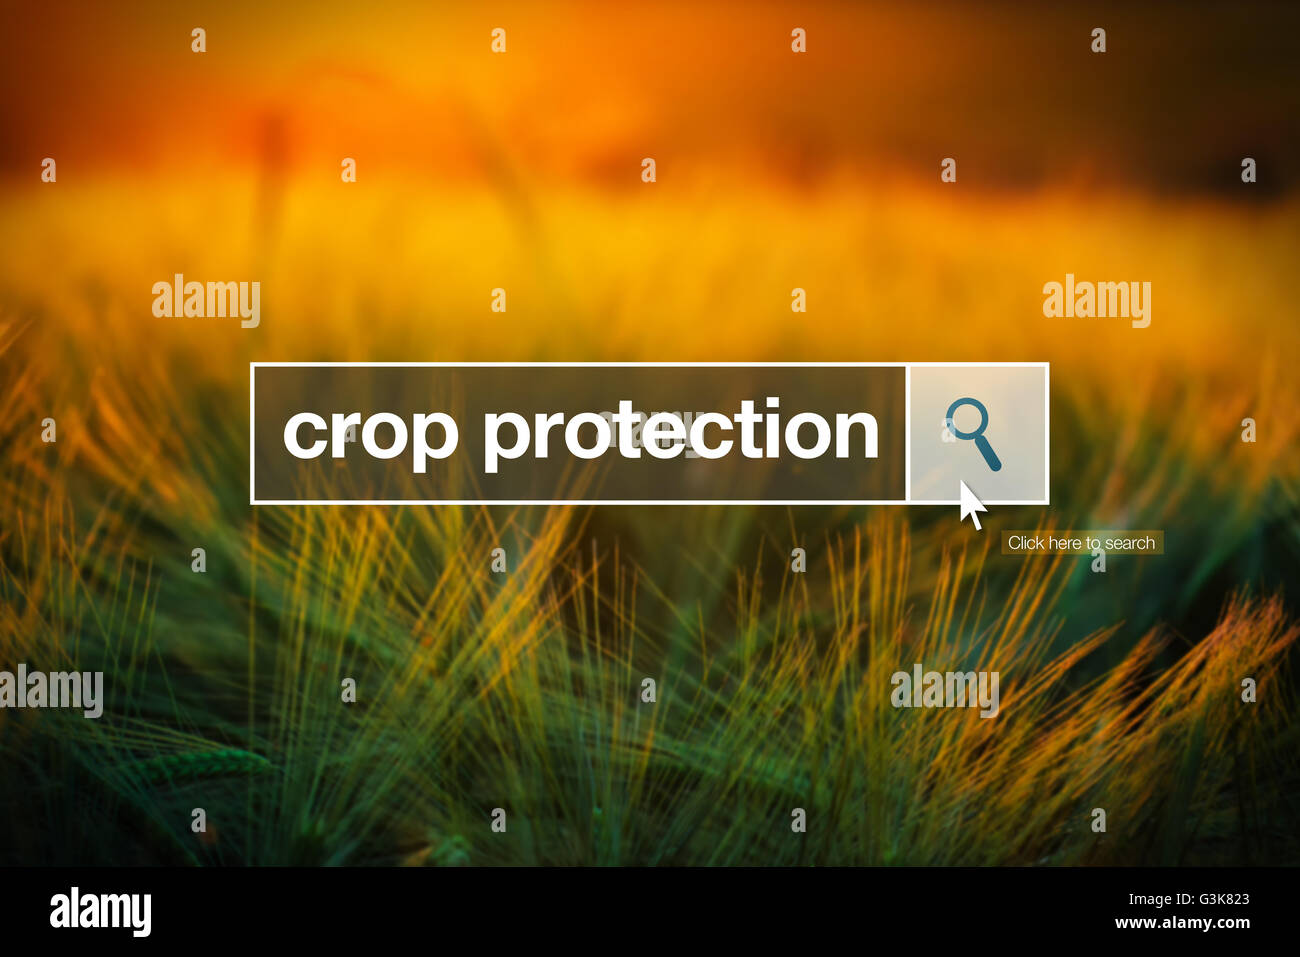 Crop protection in internet browser search box, barley field in background - Stock Image